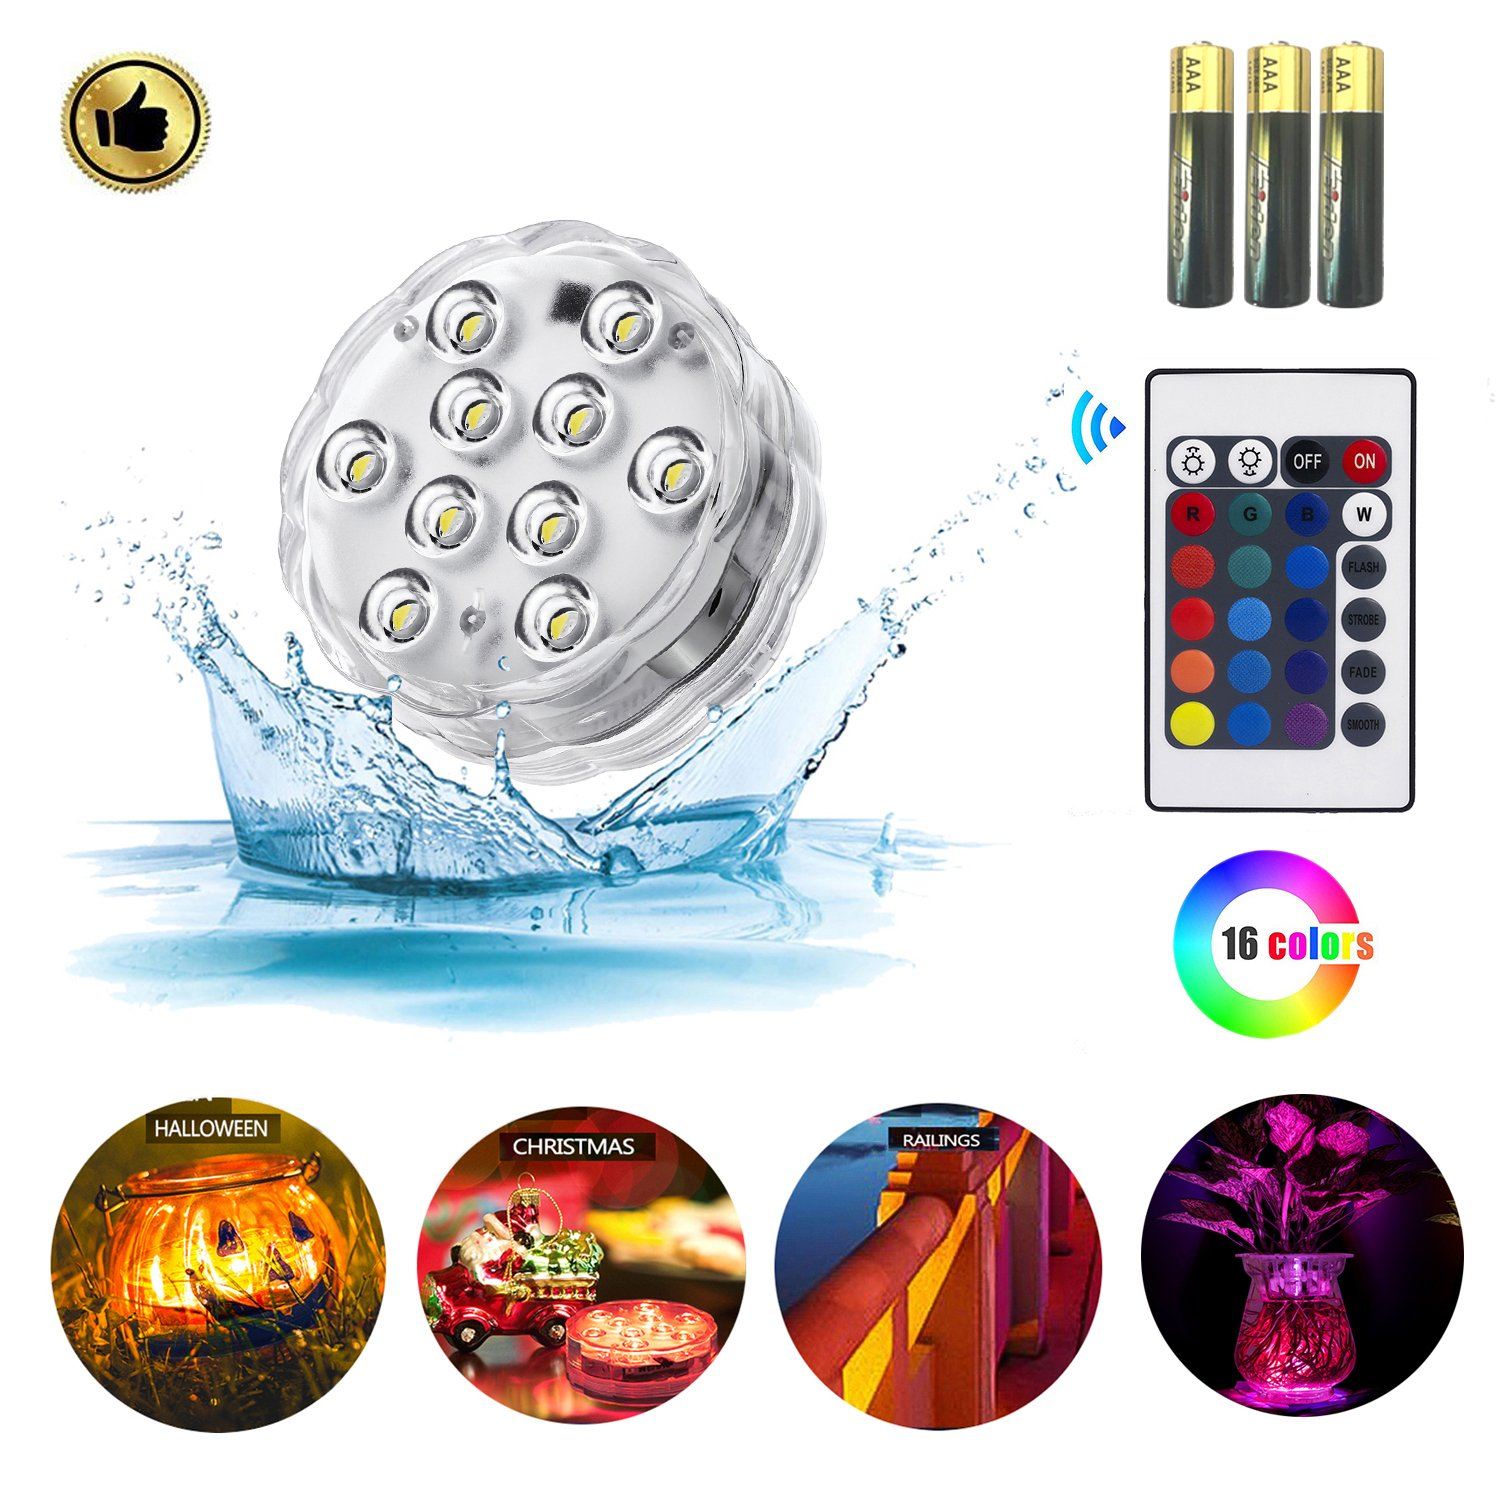 Amazon.com : Zhuofu Submersible led Lights, RGB Waterproof ...